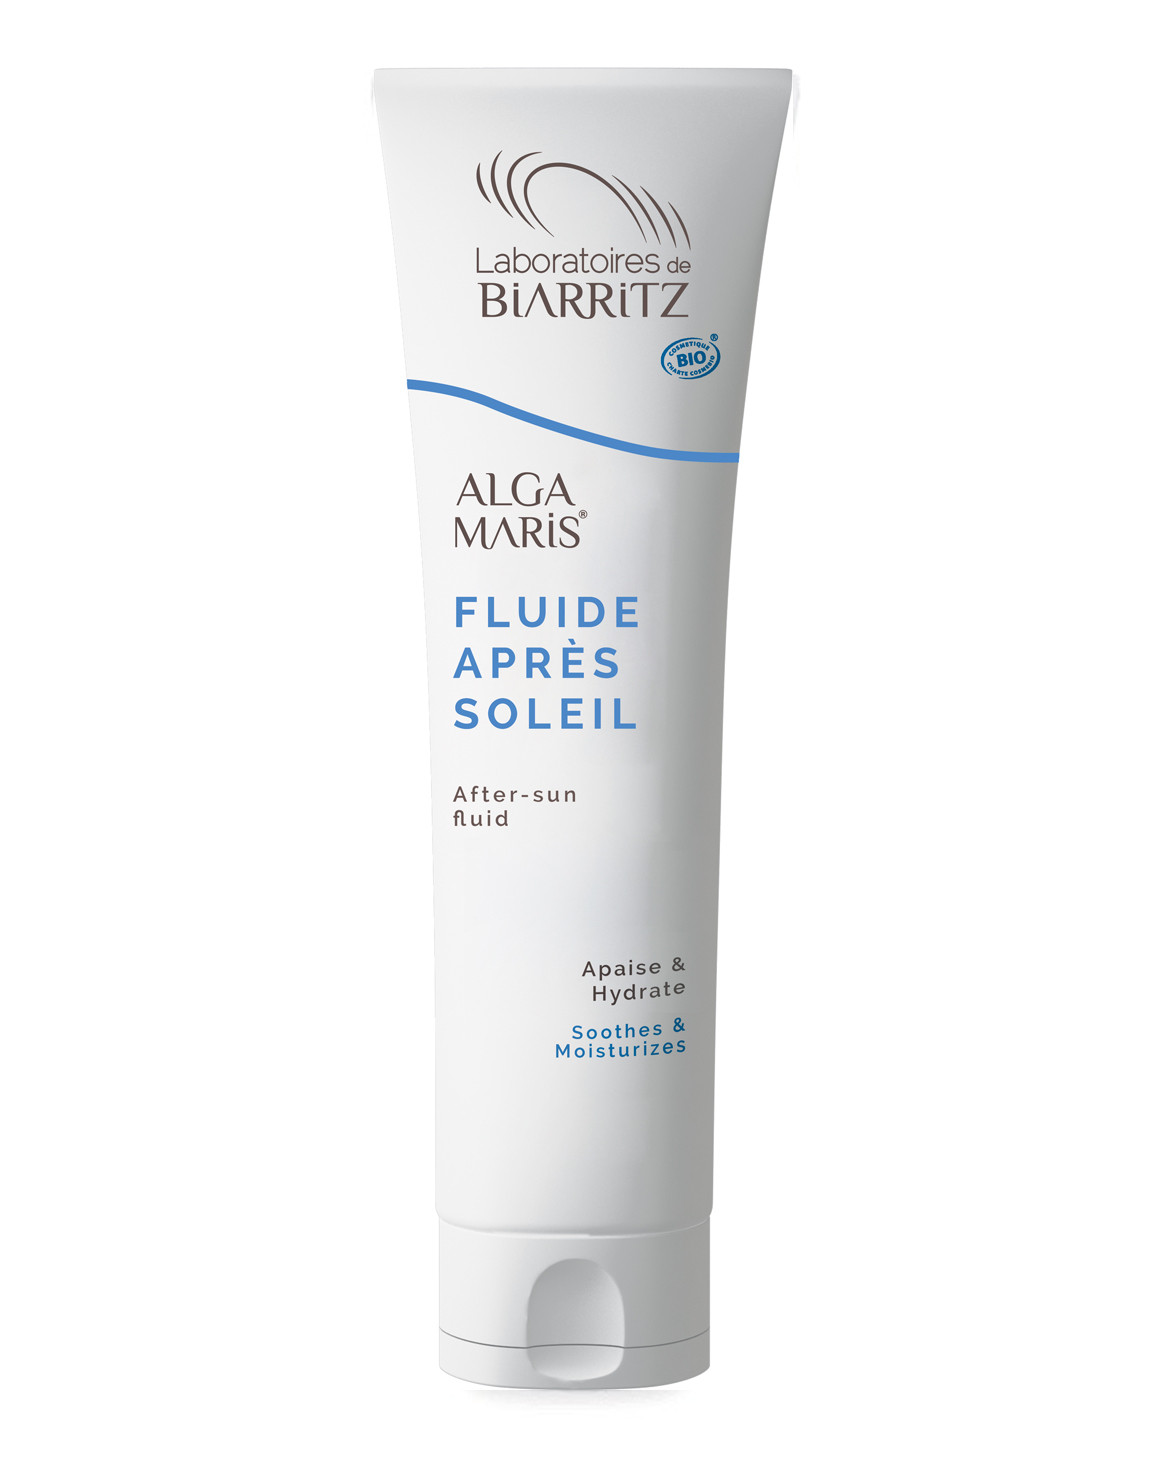 Fluido Dopo Sole Bio - Alga Maris 150ml [3325]